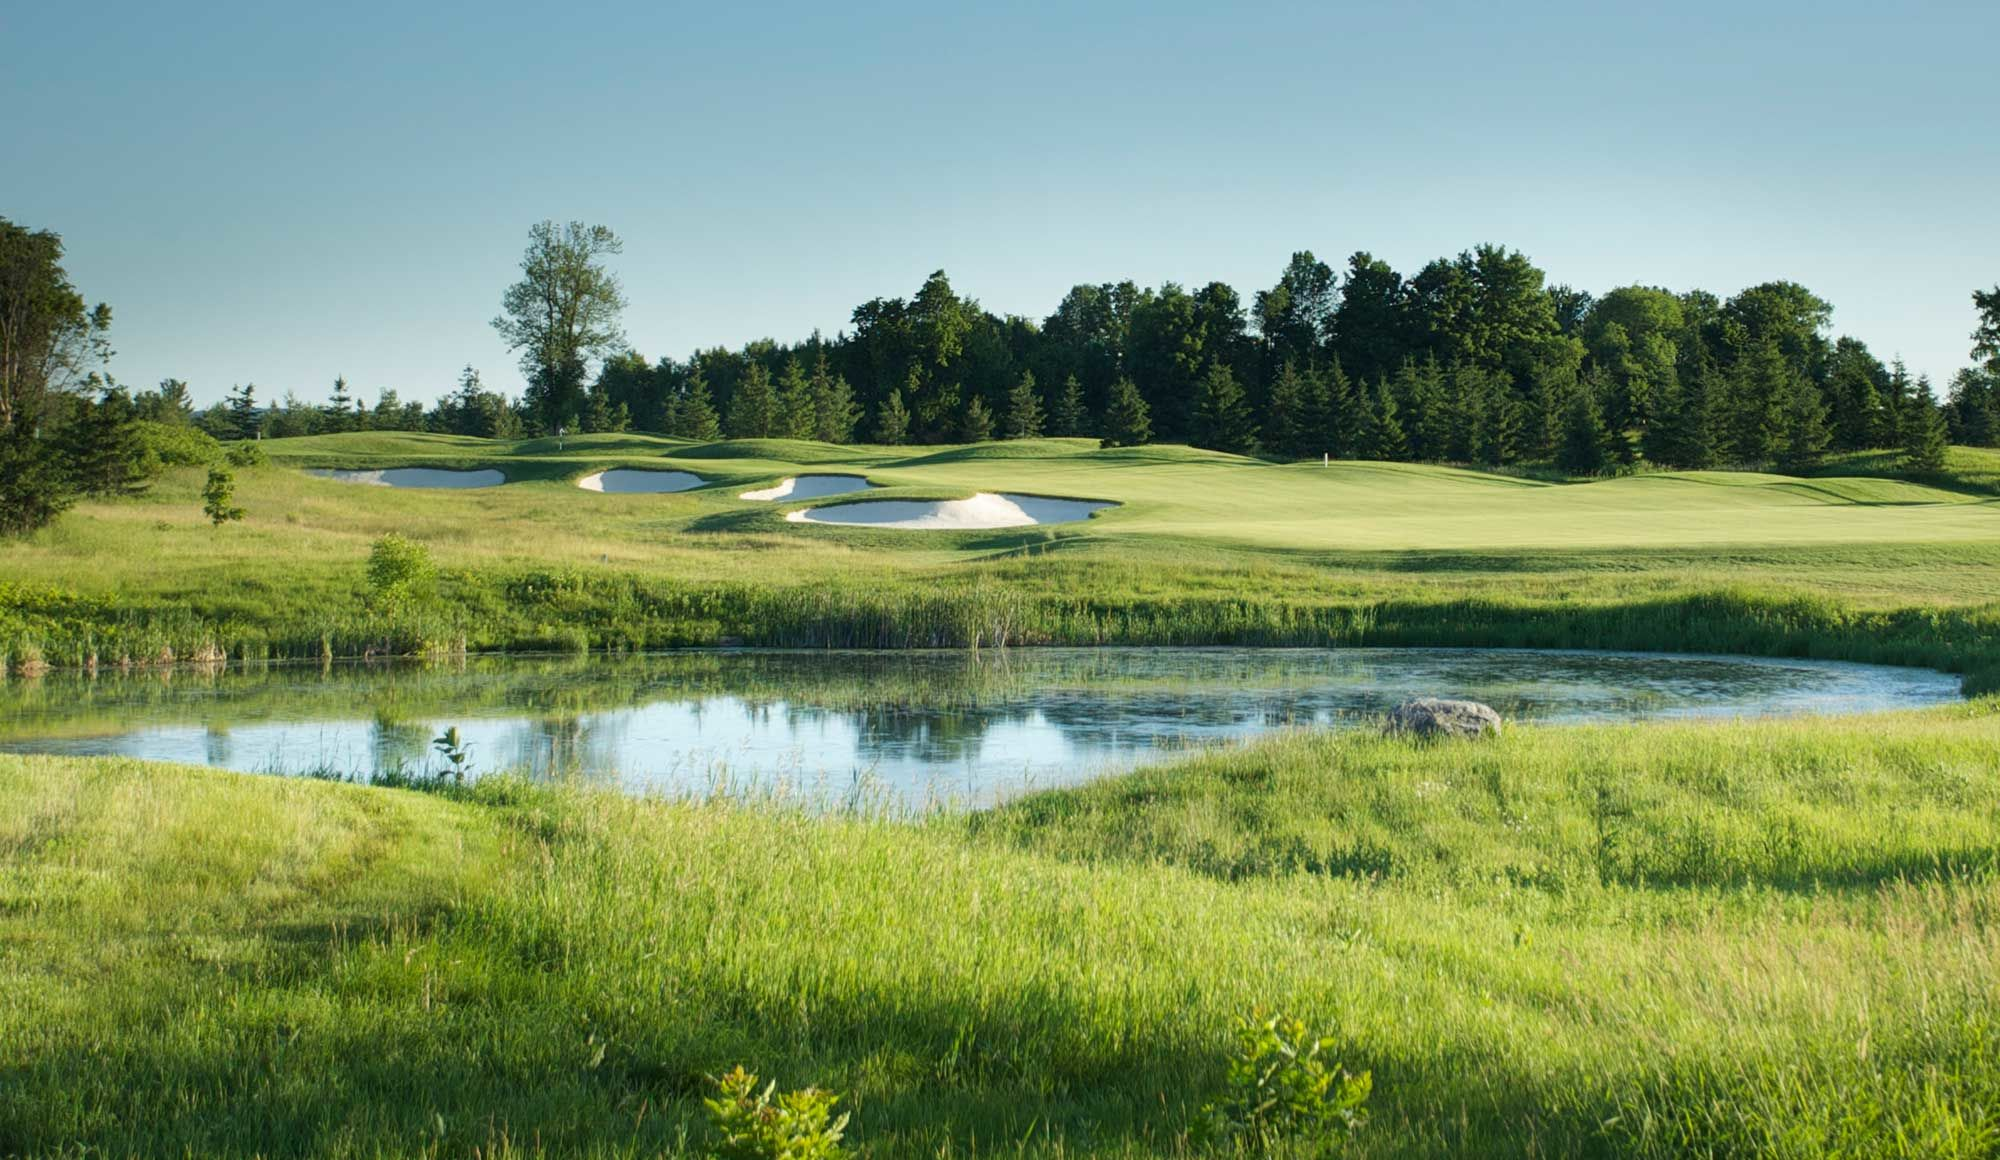 Camelot golf and country club cover picture